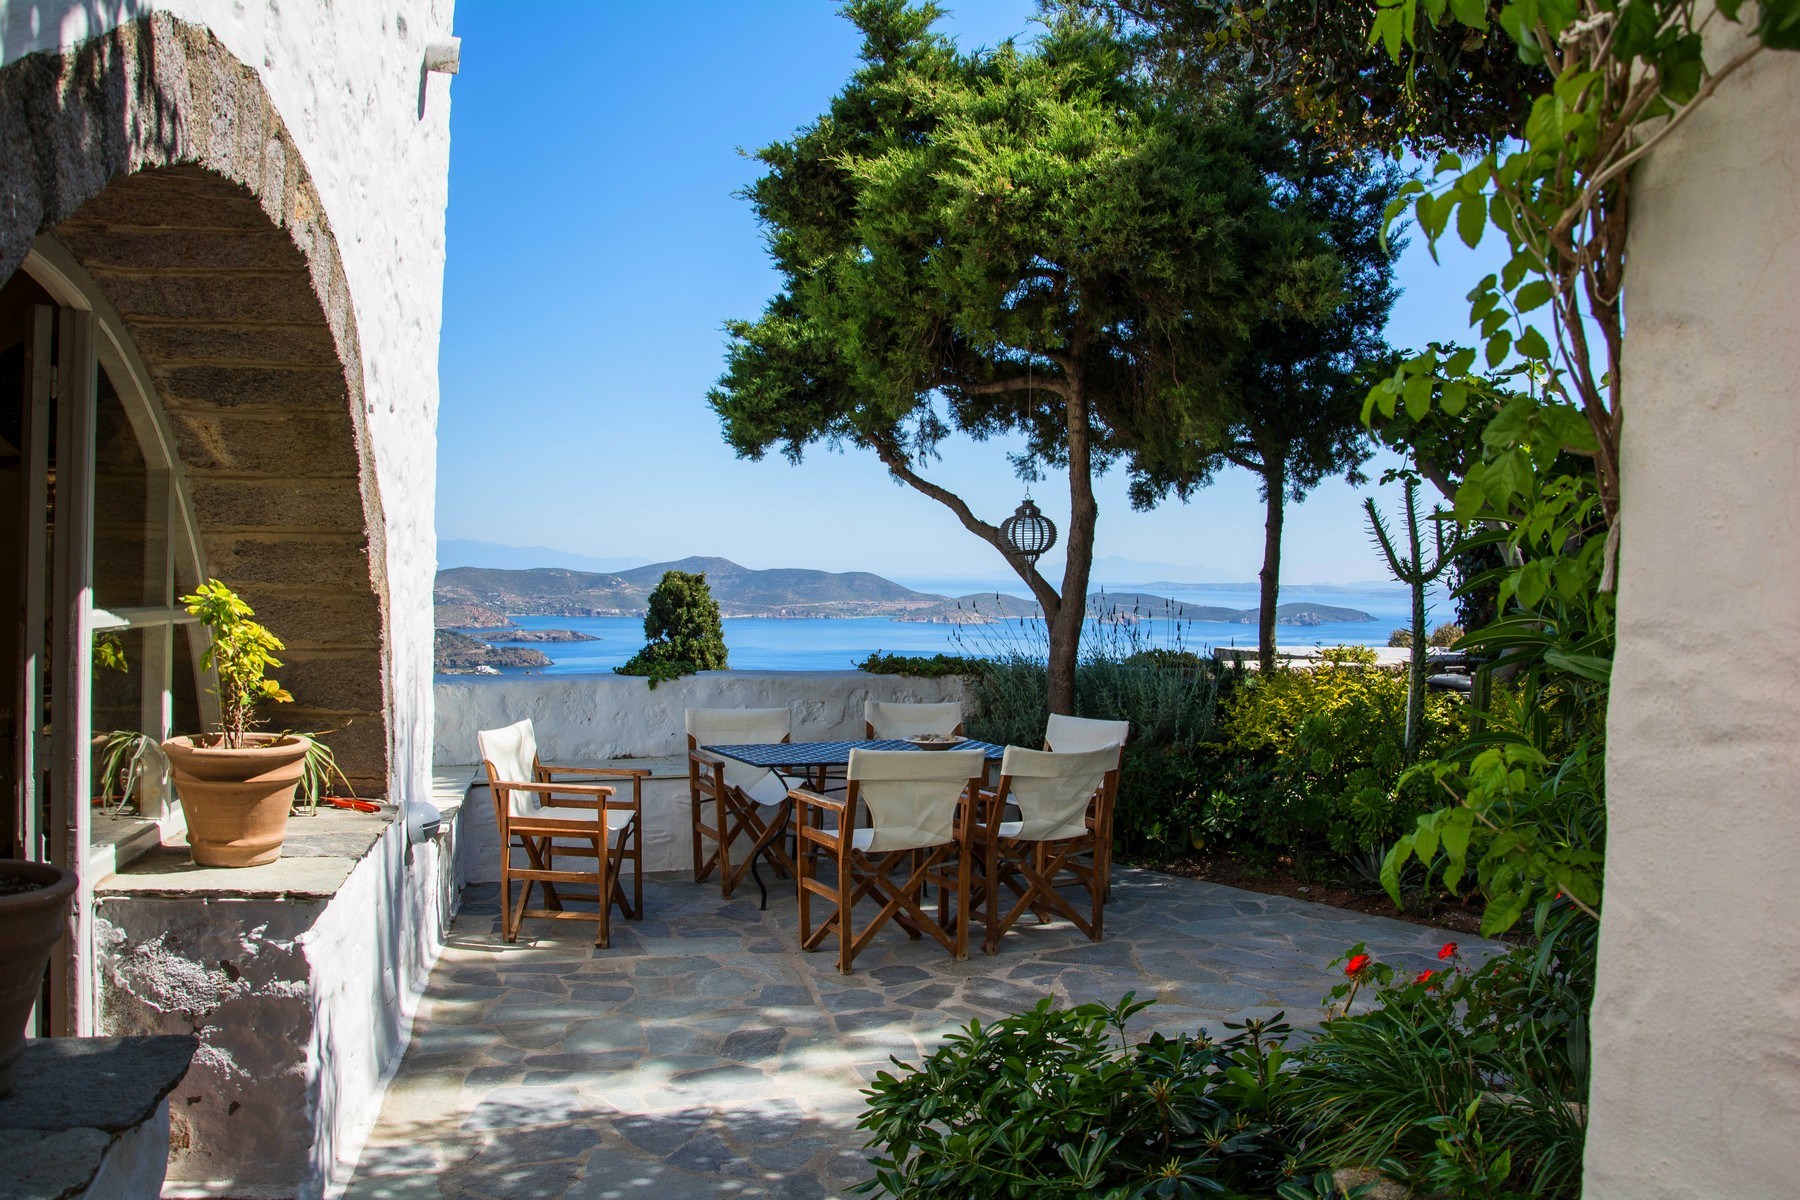 Single Family Home for Sale at Panorama Patmos Chora, Northern Aegean, 85500 Greece